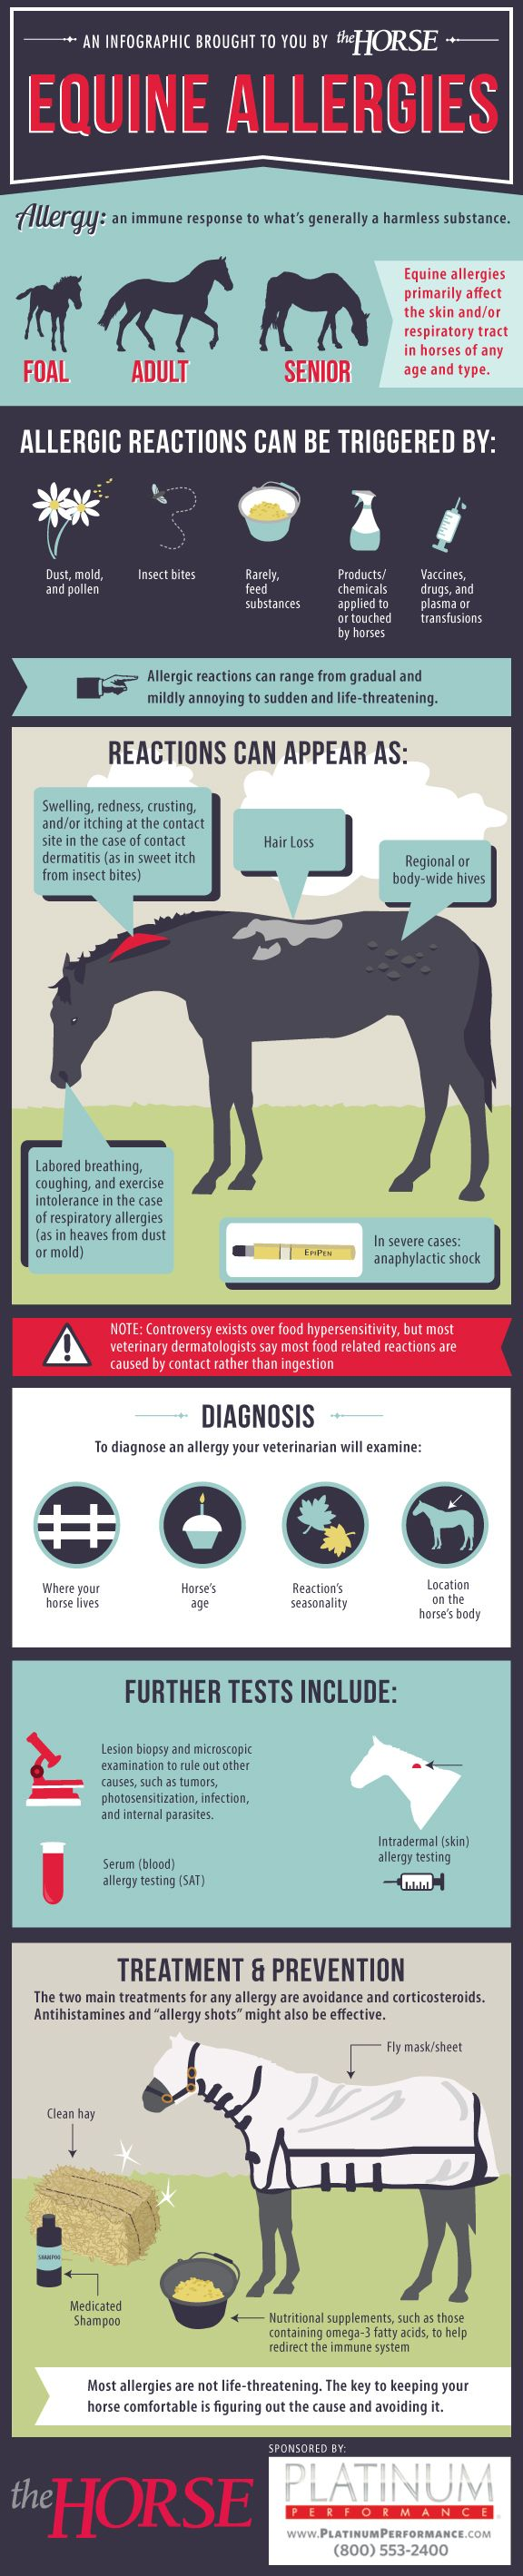 [INFOGRAPHIC] Equine Allergies - Learn more about allergic reactions in horses with this step-by-step visual guide, brought to you by TheHorse.com and @Platinum Performance  #horses #horsehealth #allergies